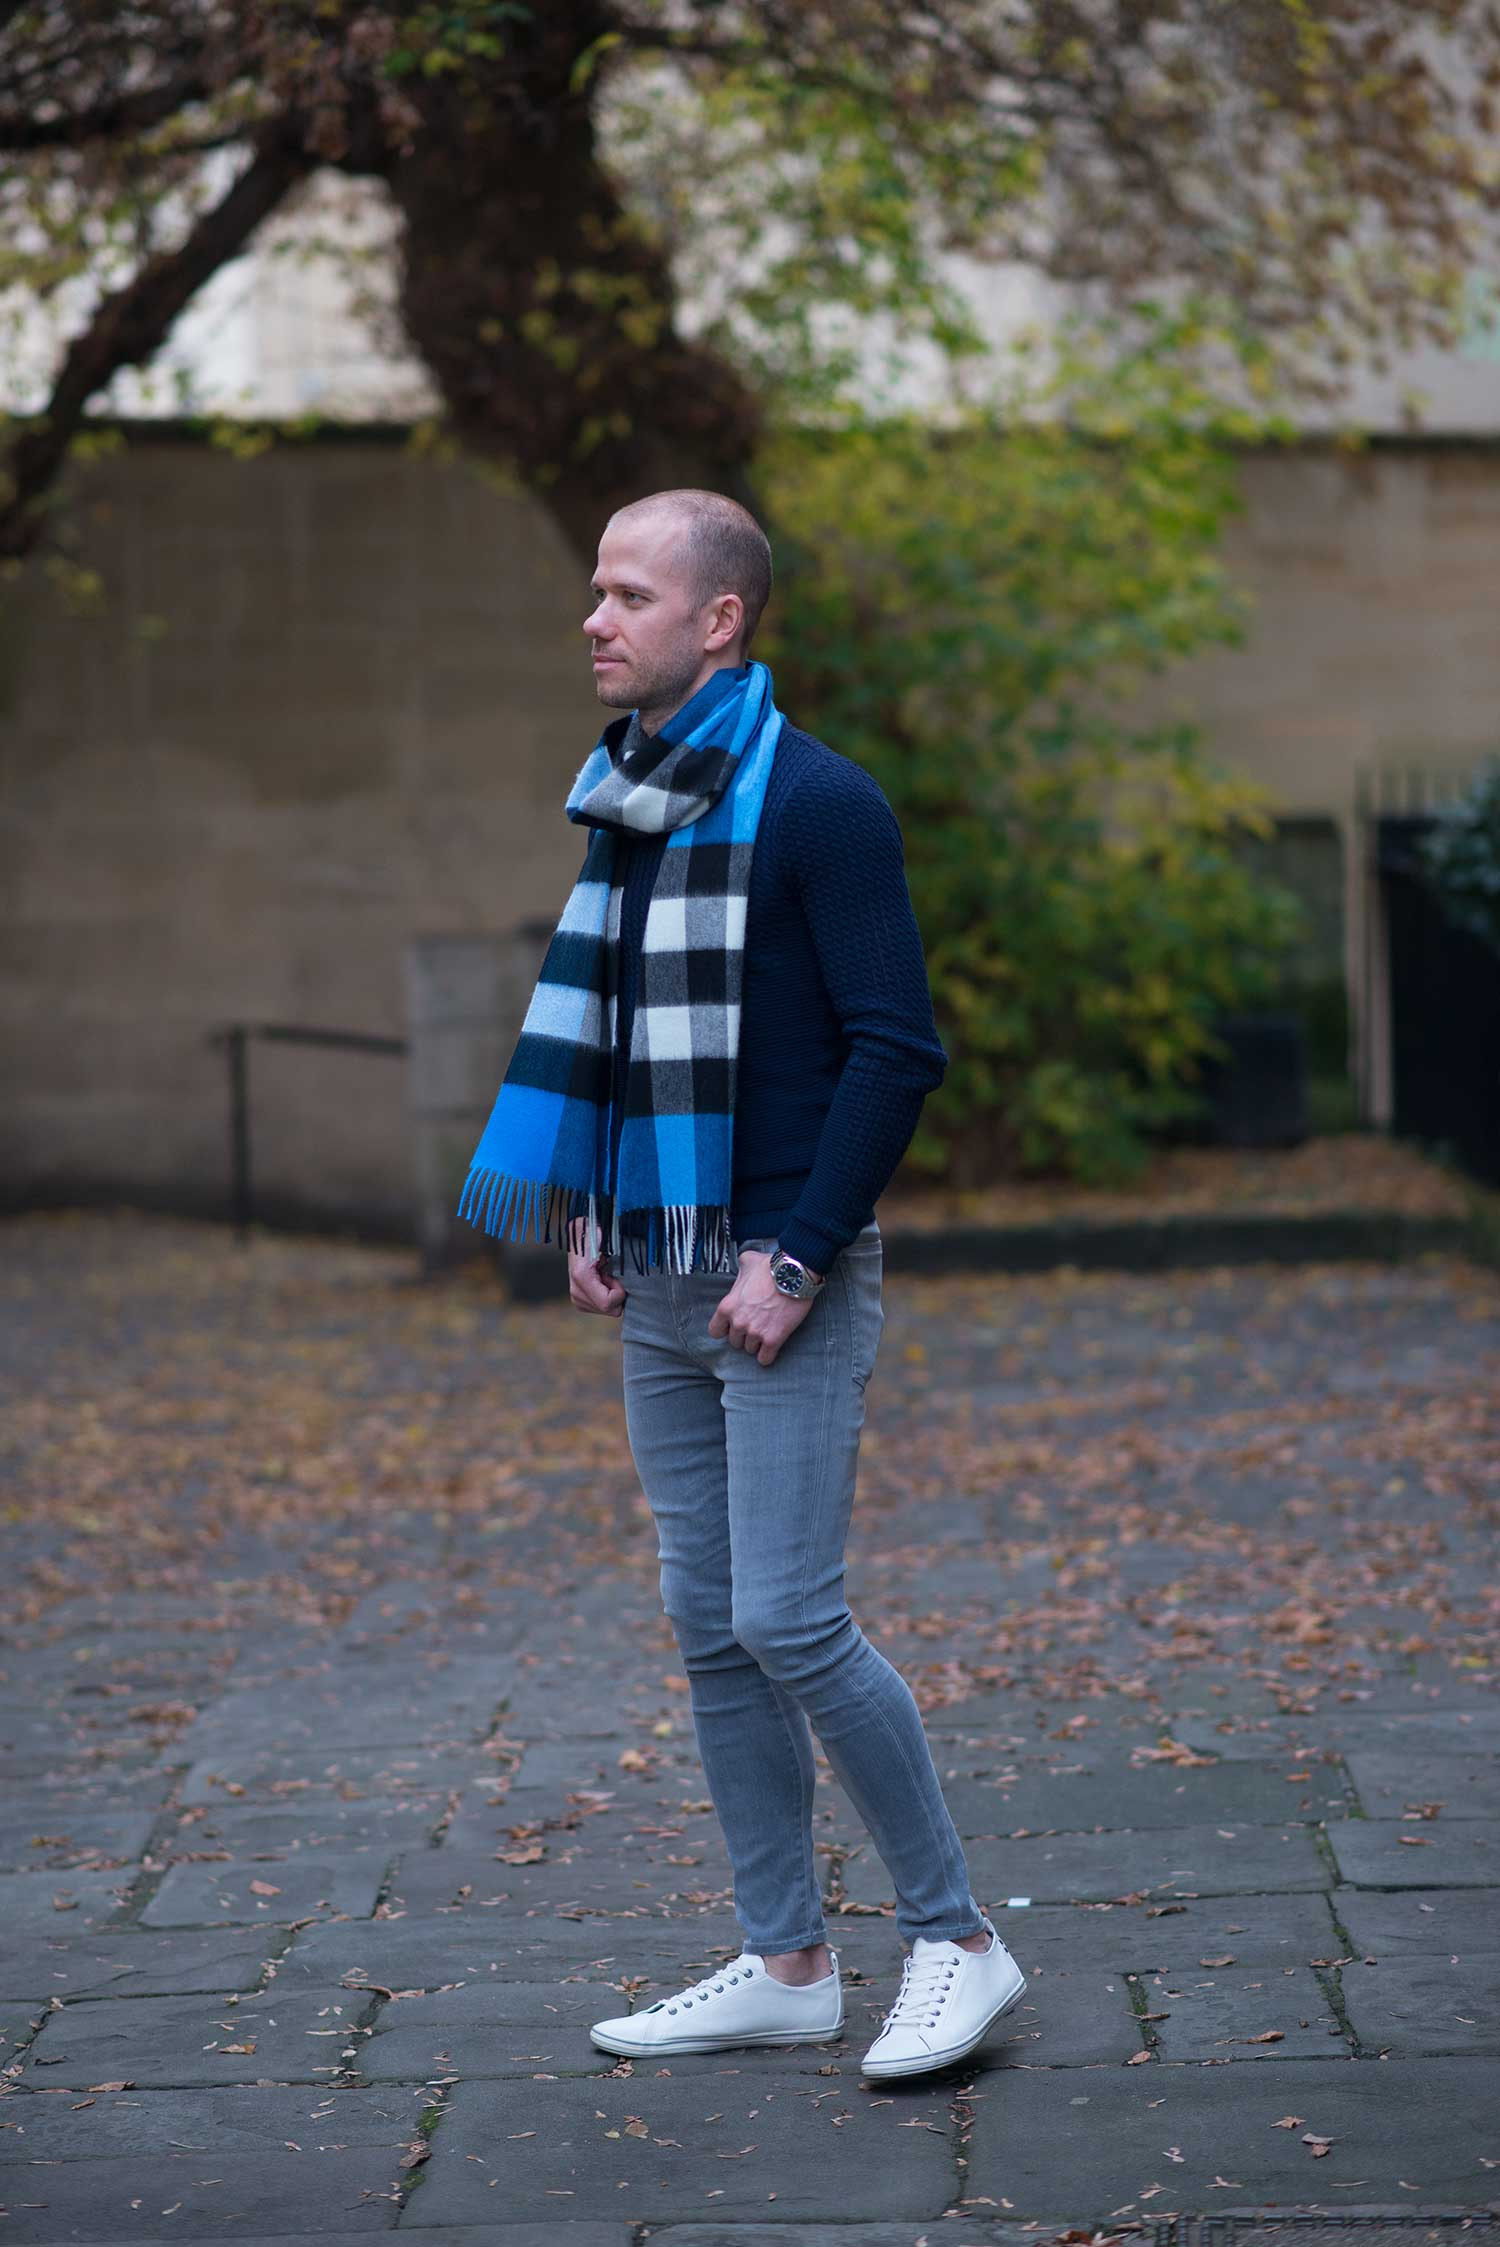 blue-burberry-scarf-navy-sweater-mens-outfit